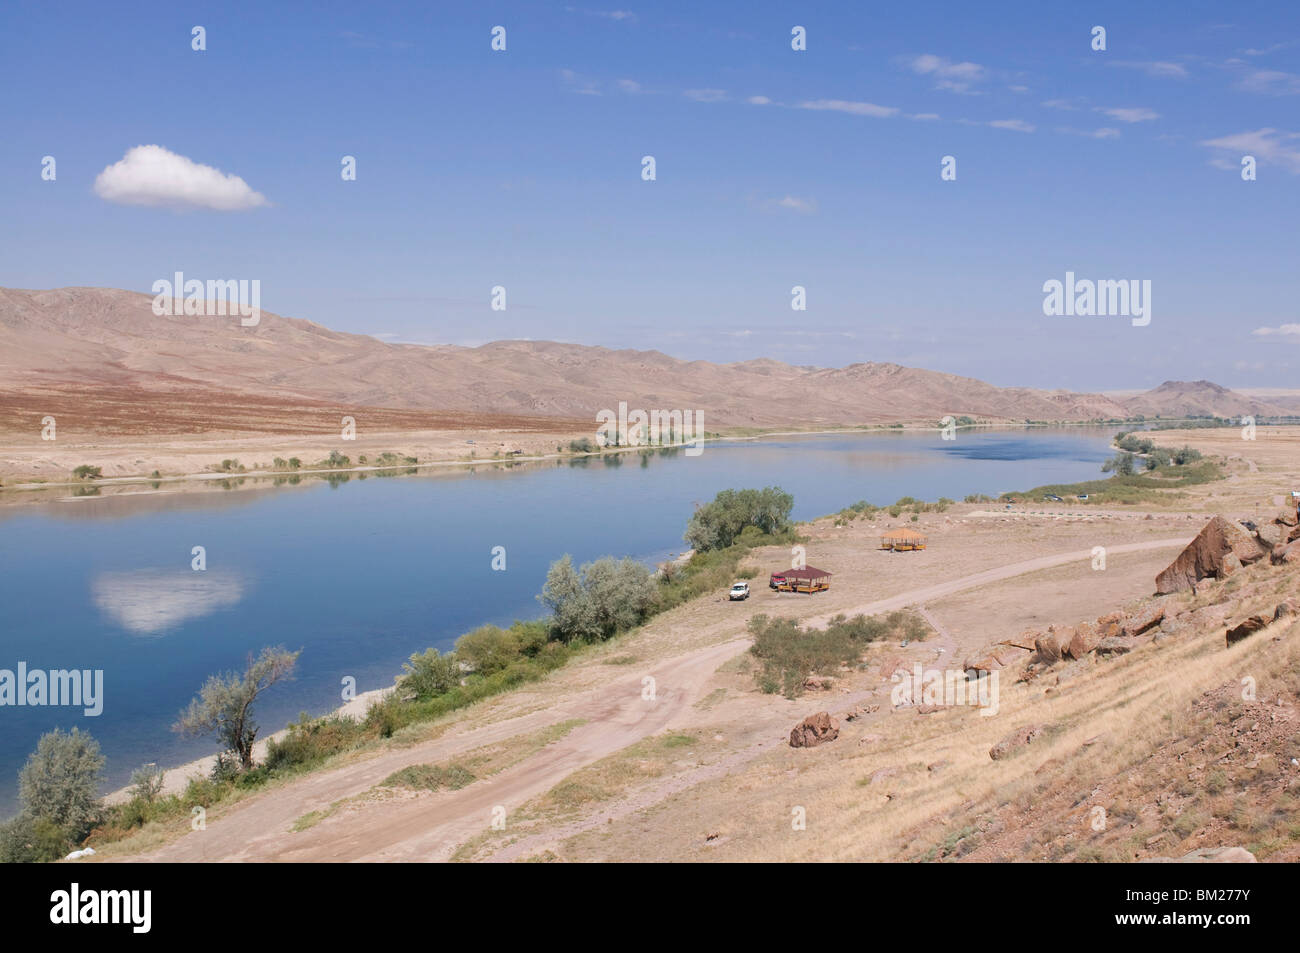 Ily River, Kazakhstan, Central Asia - Stock Image